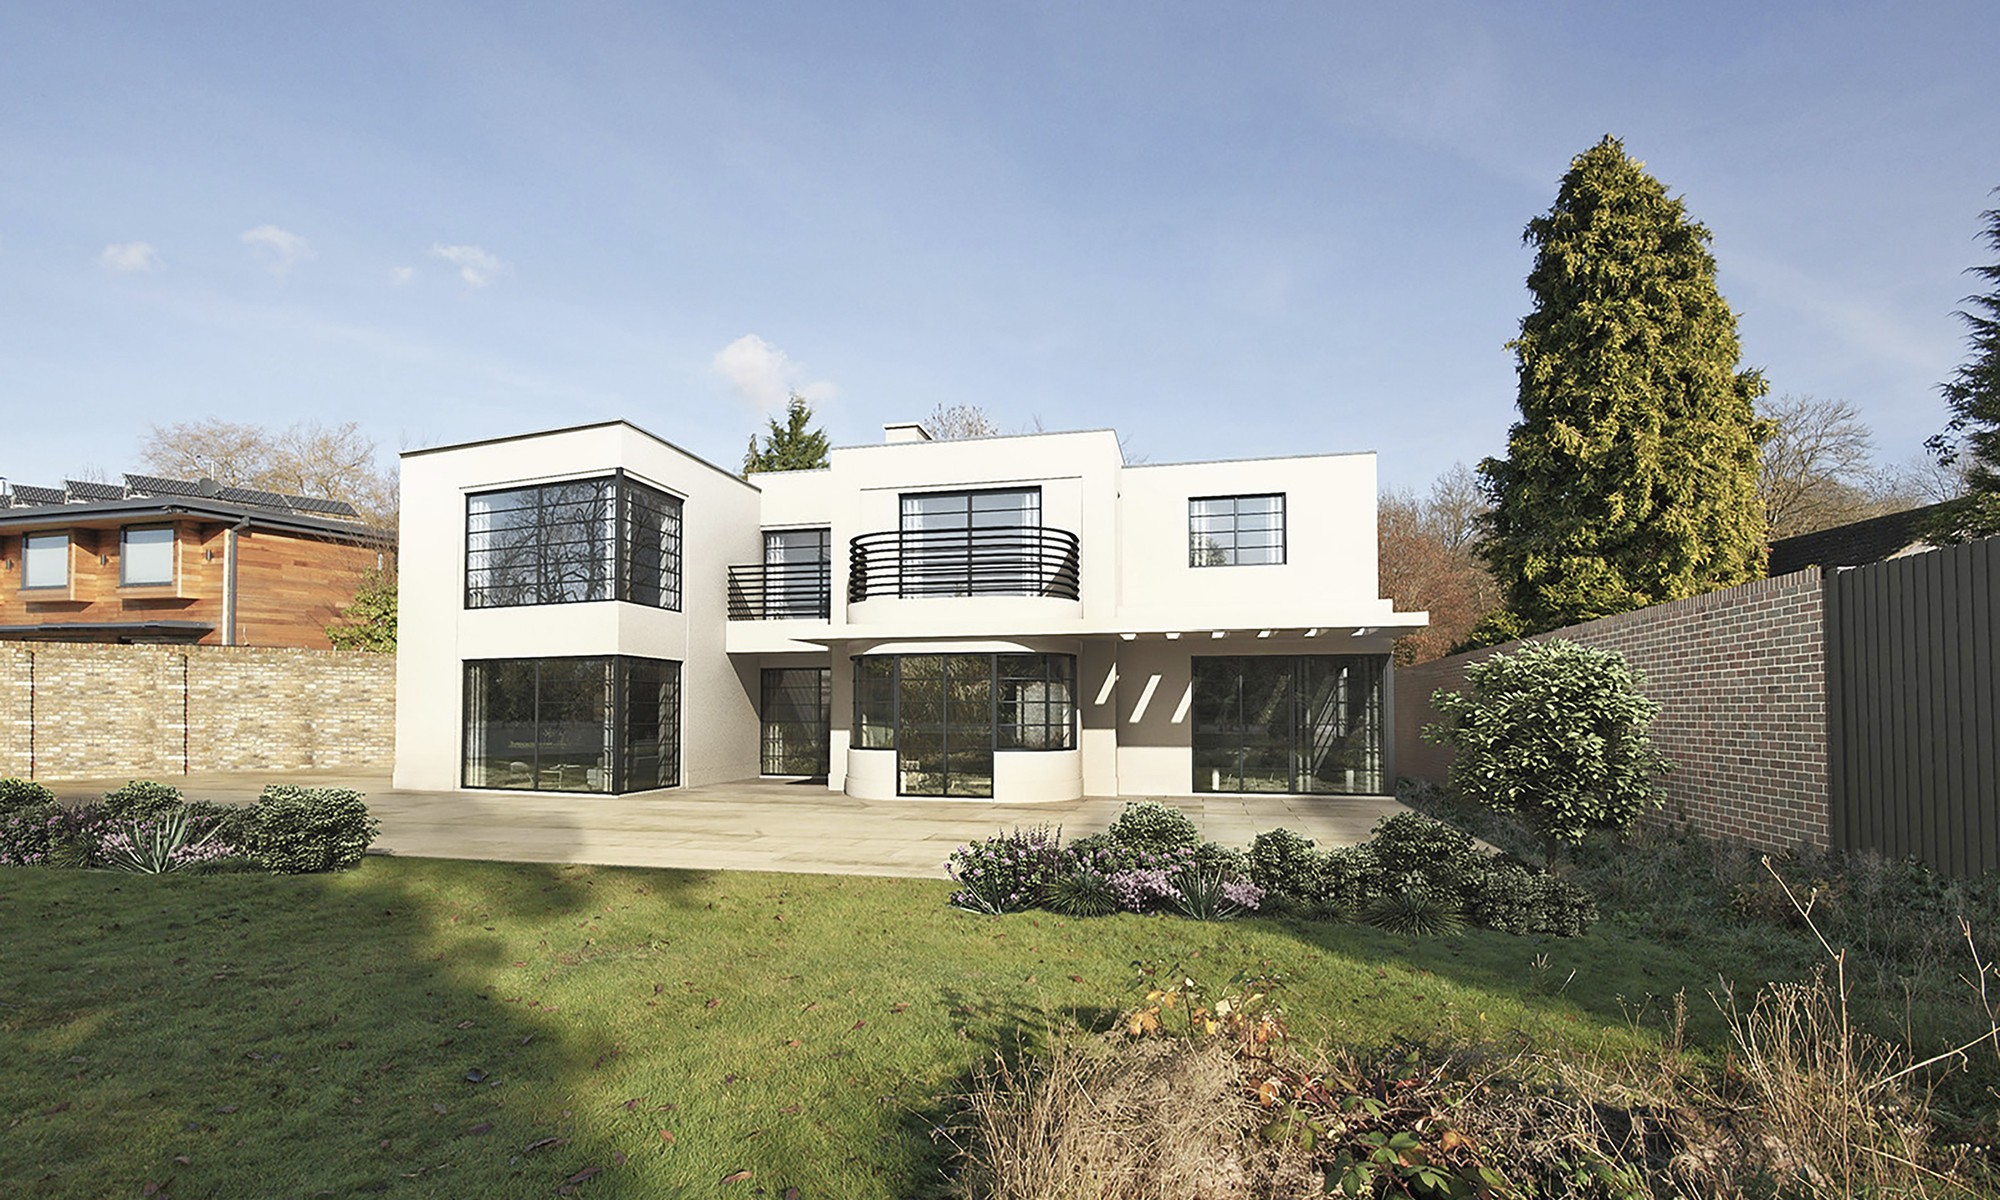 This striking art deco style timber frame house is one of weberhauss many modern prefabricated homes built to our clients specifications